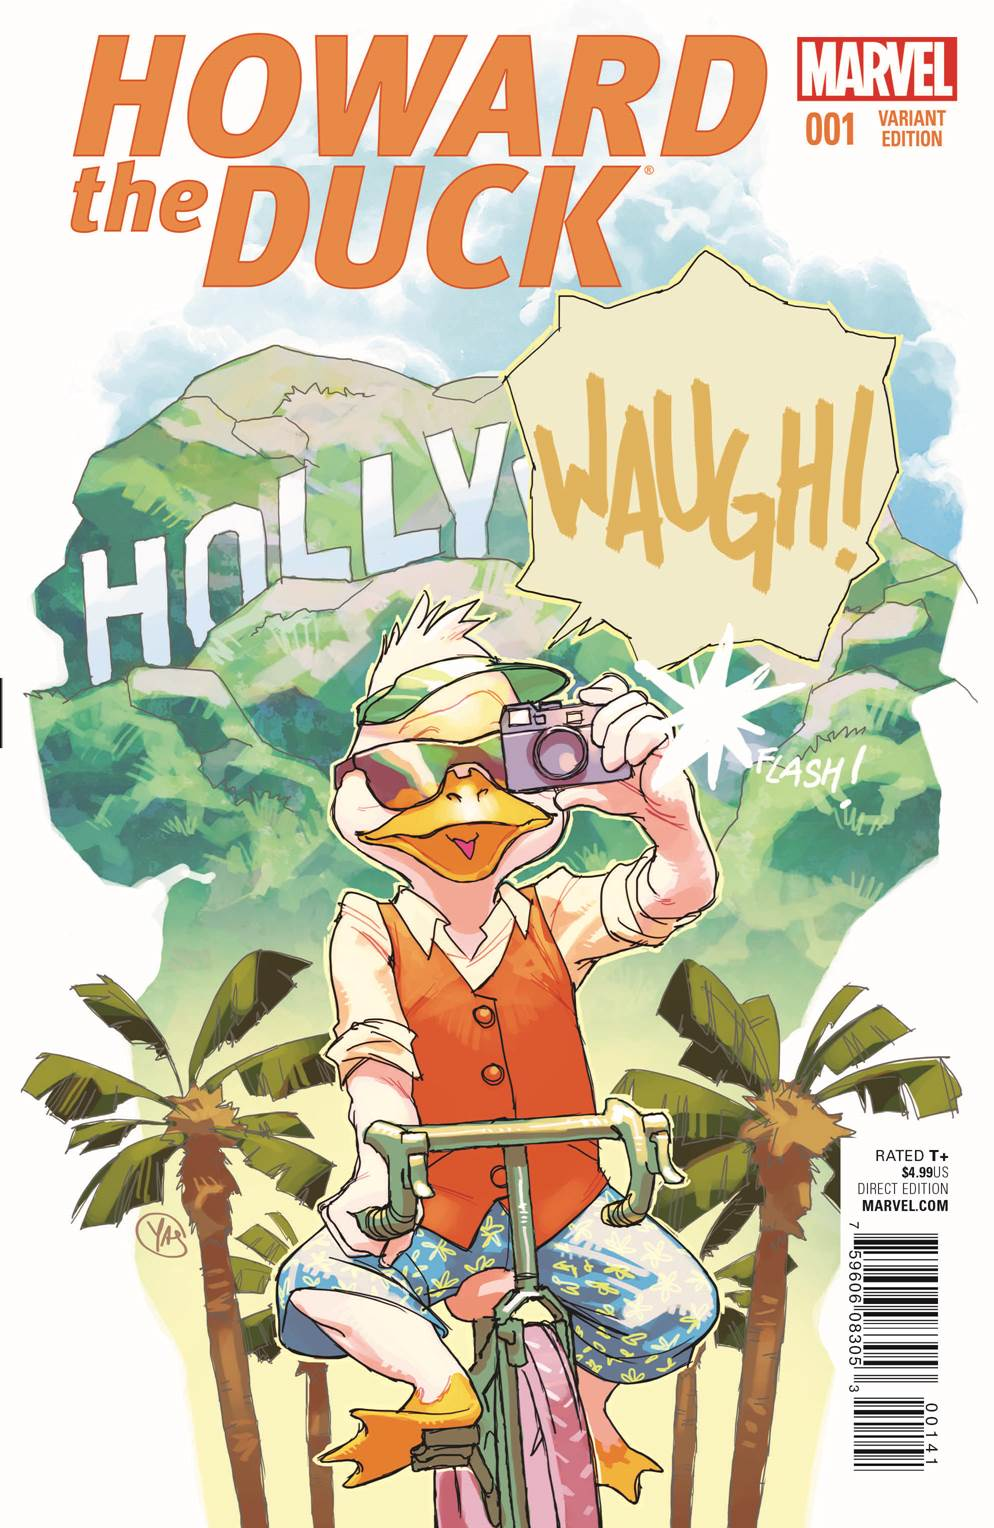 Waugh! Your New Look at HOWARD THE DUCK #1!